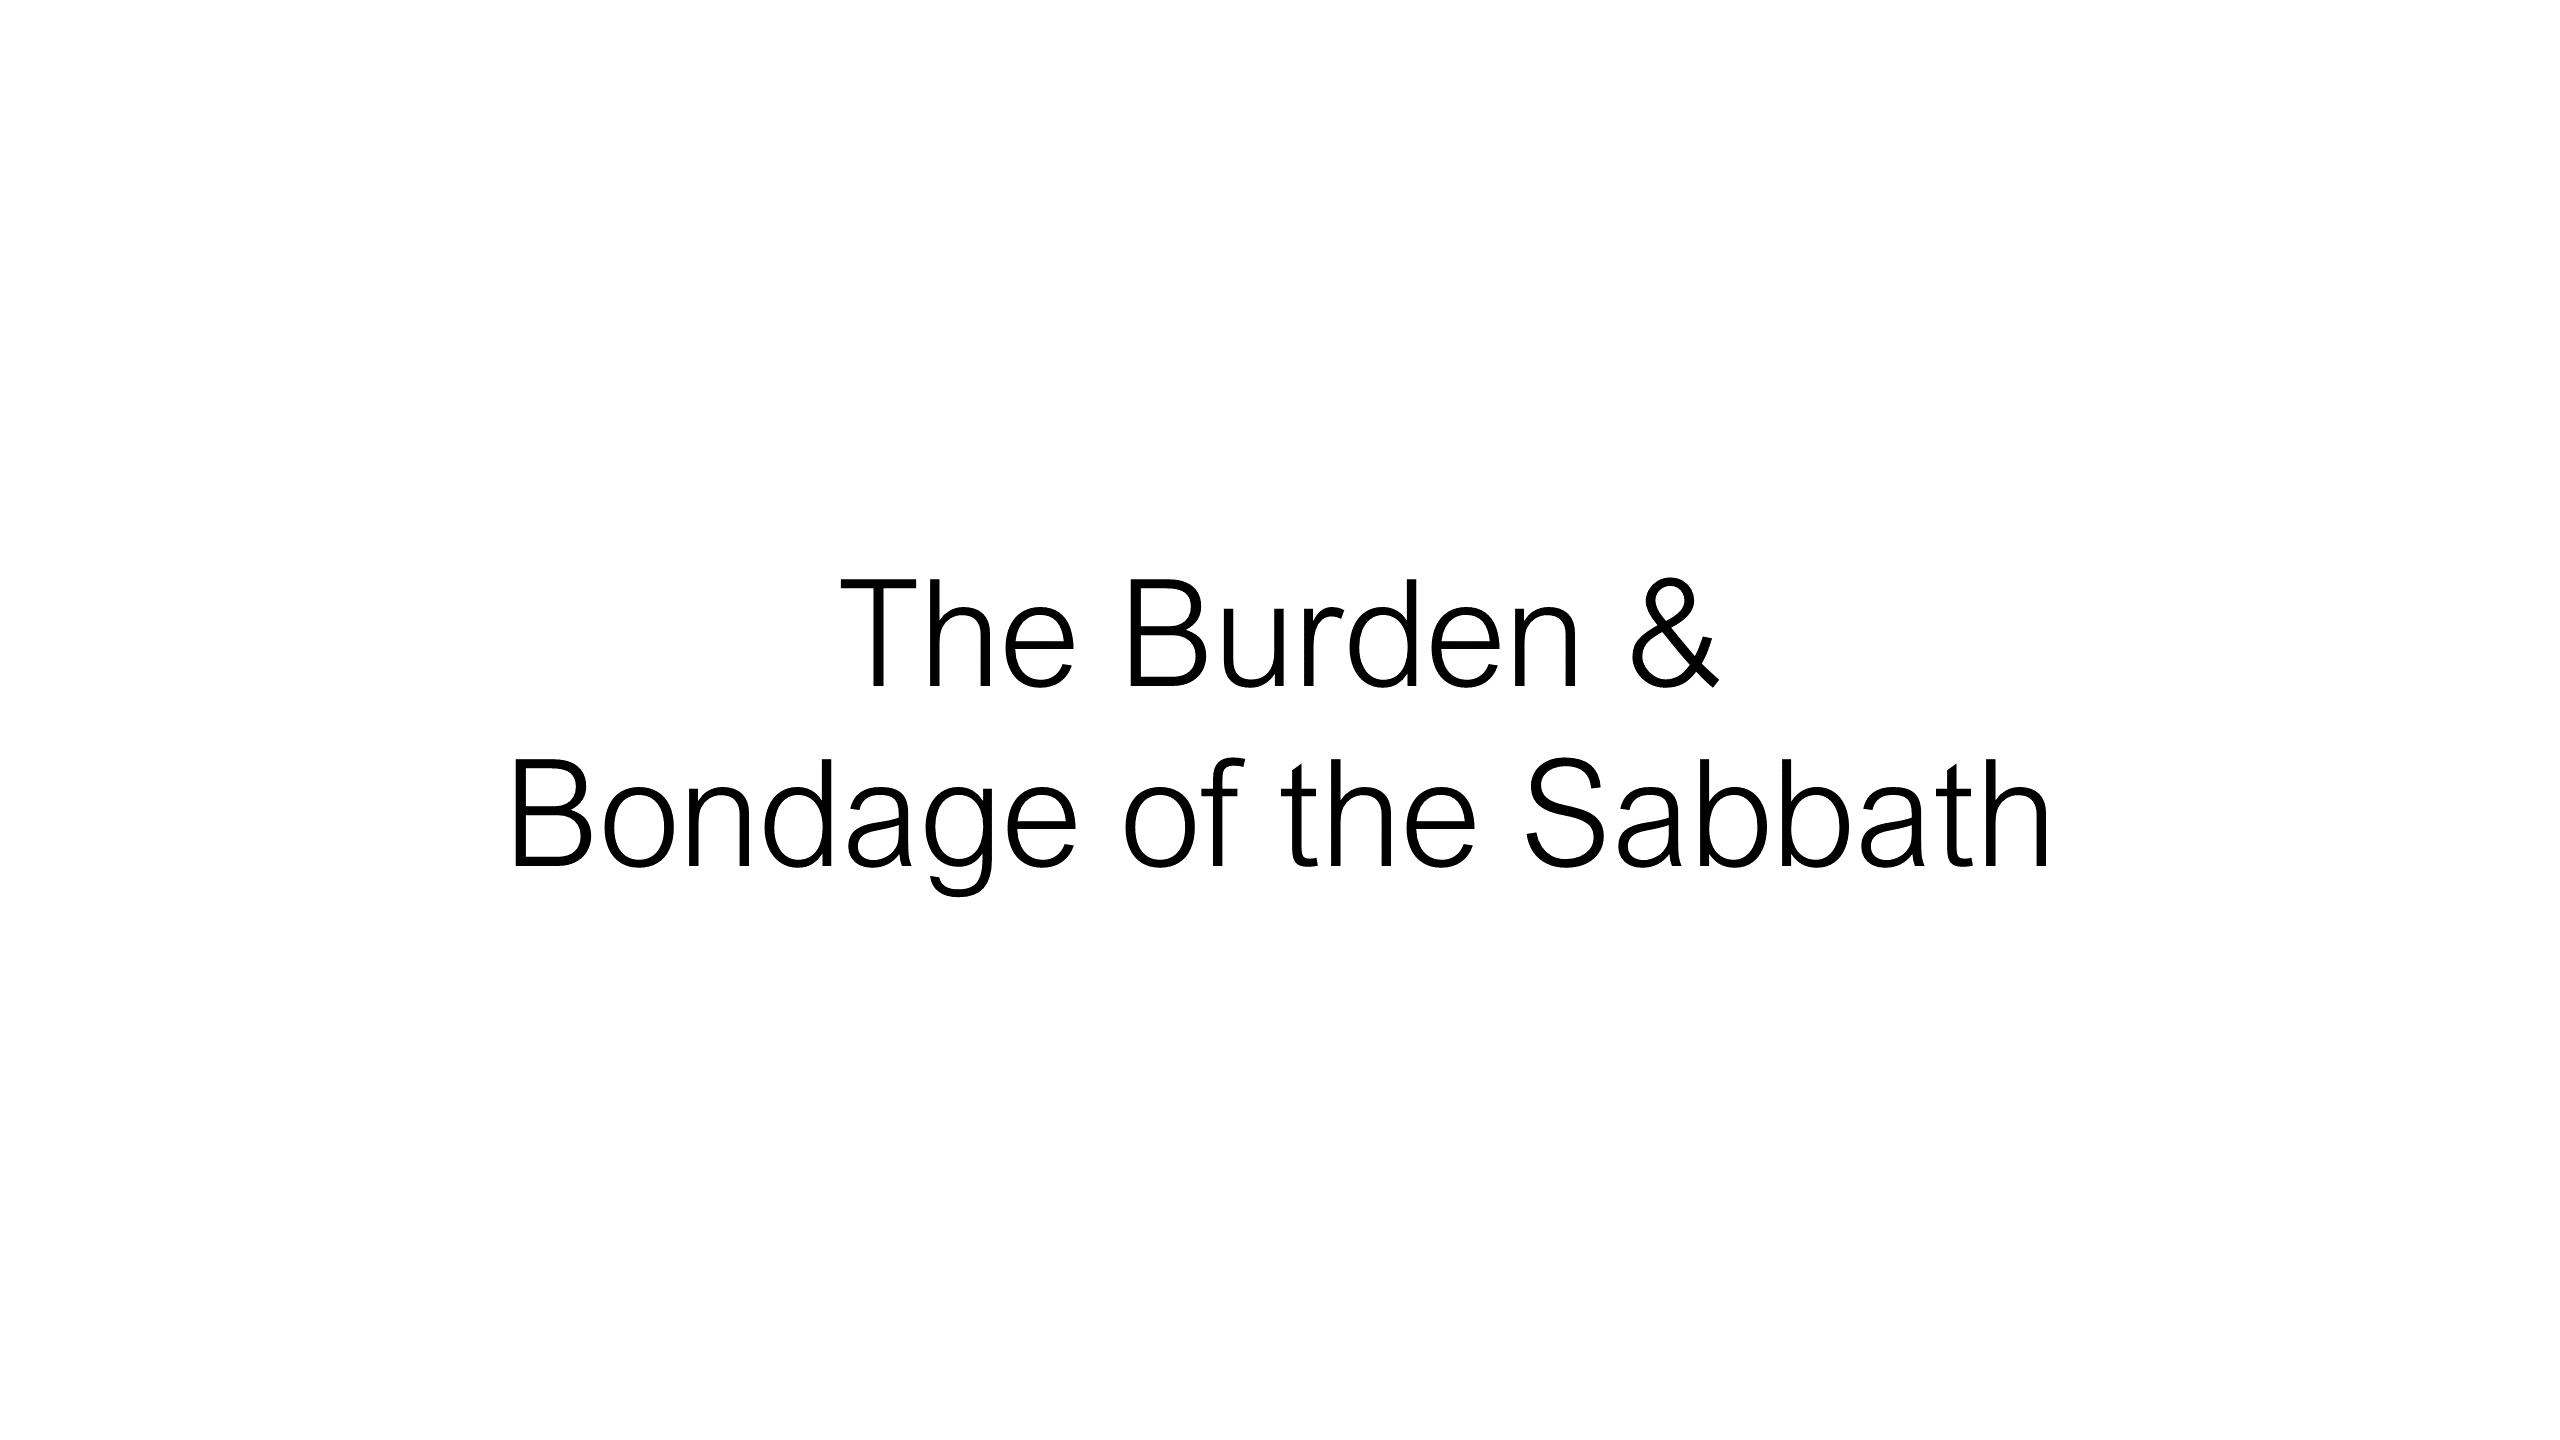 HFG-10 - Sabbath Bondage & Knowing The Joys Of Christ's Rest Of This Side Of The Cross (10)